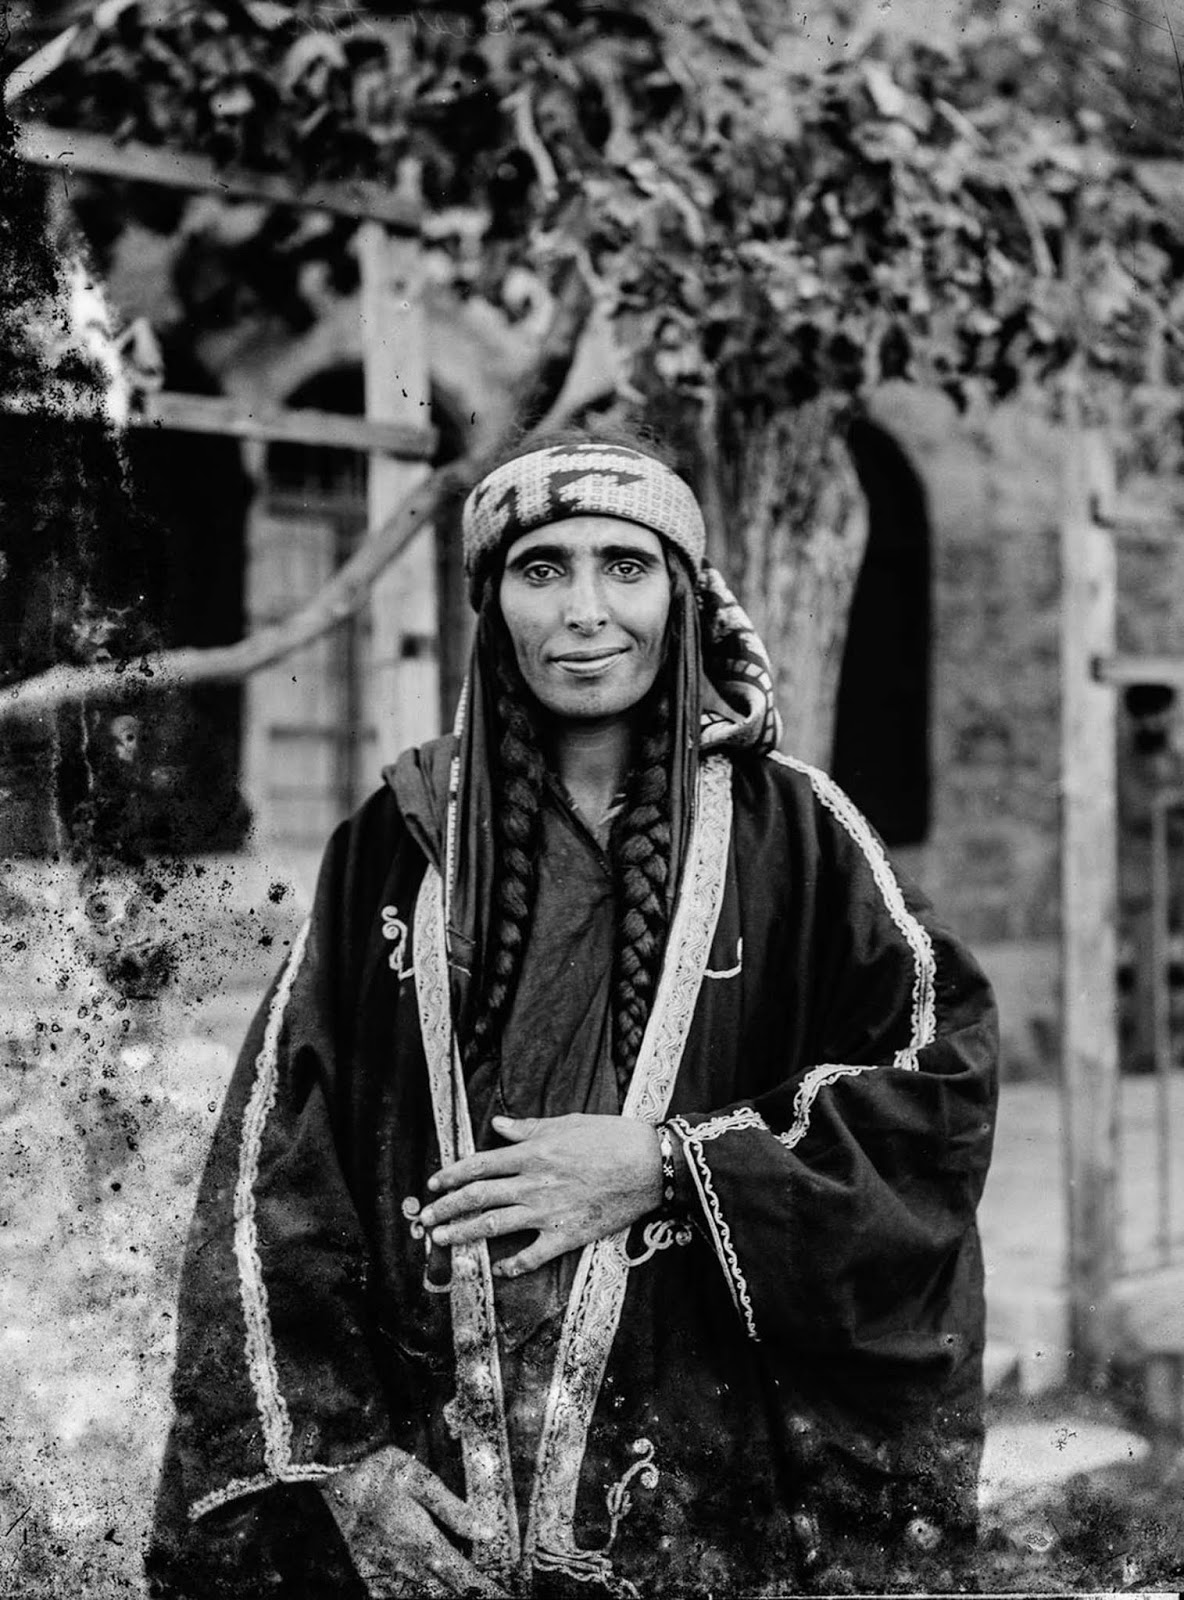 Arab Christian Bedouin woman from the settled town of Kerak, Jordan, who probably was the wife of a sheikh. Braids were predominantly worn by Arab Christian Bedouin women of the tribes of Jordan.